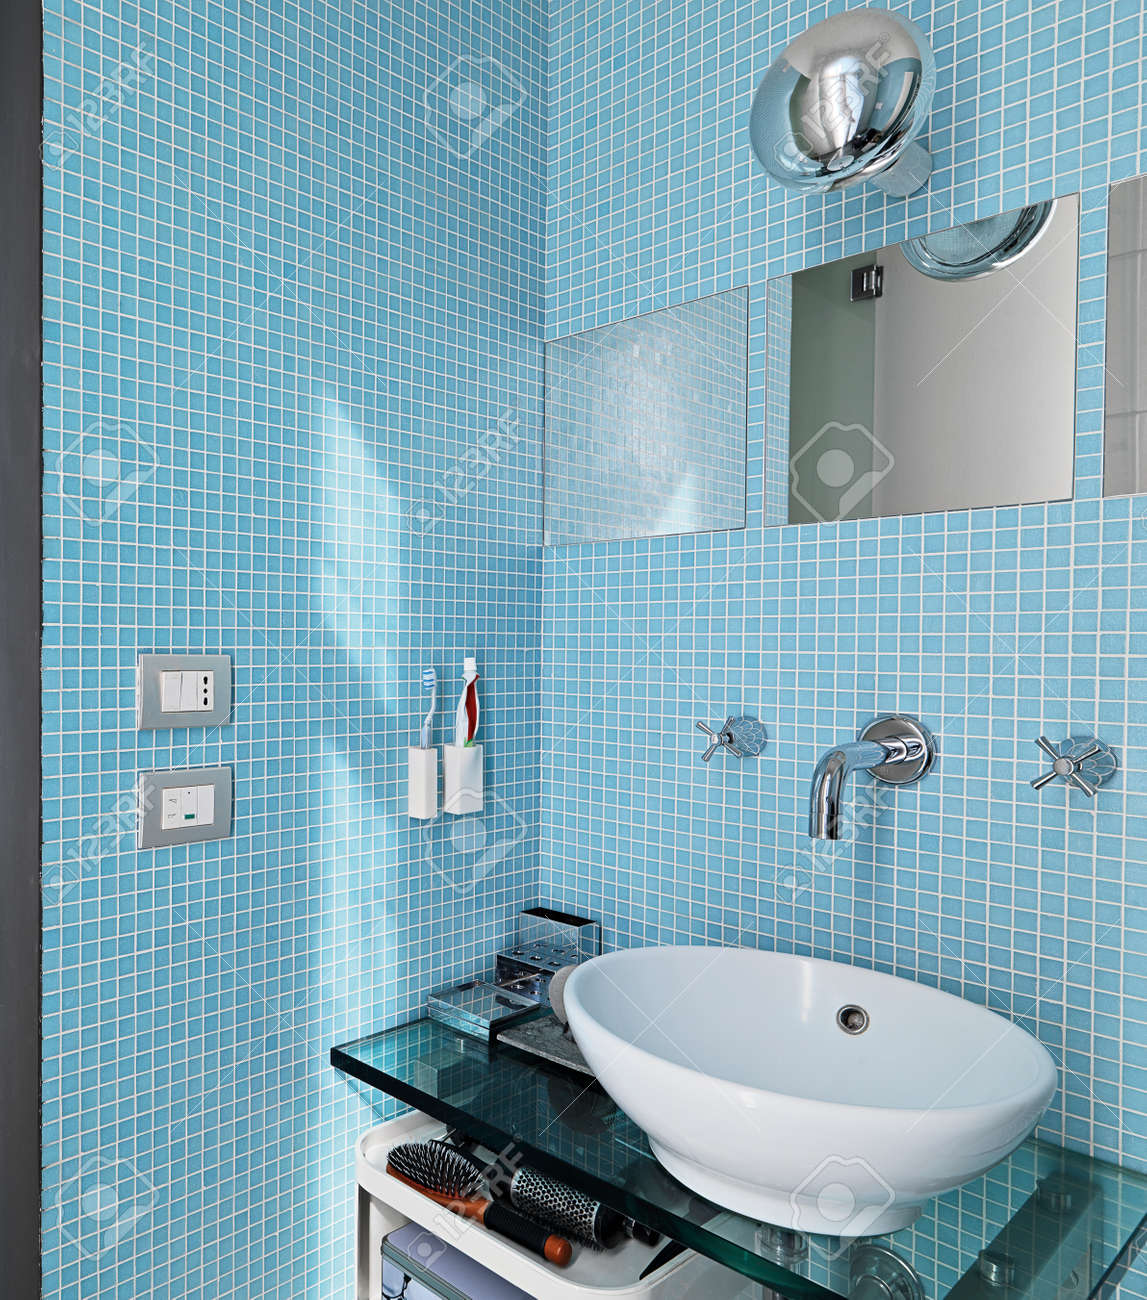 modern bathroom Stock Photo - 24366812